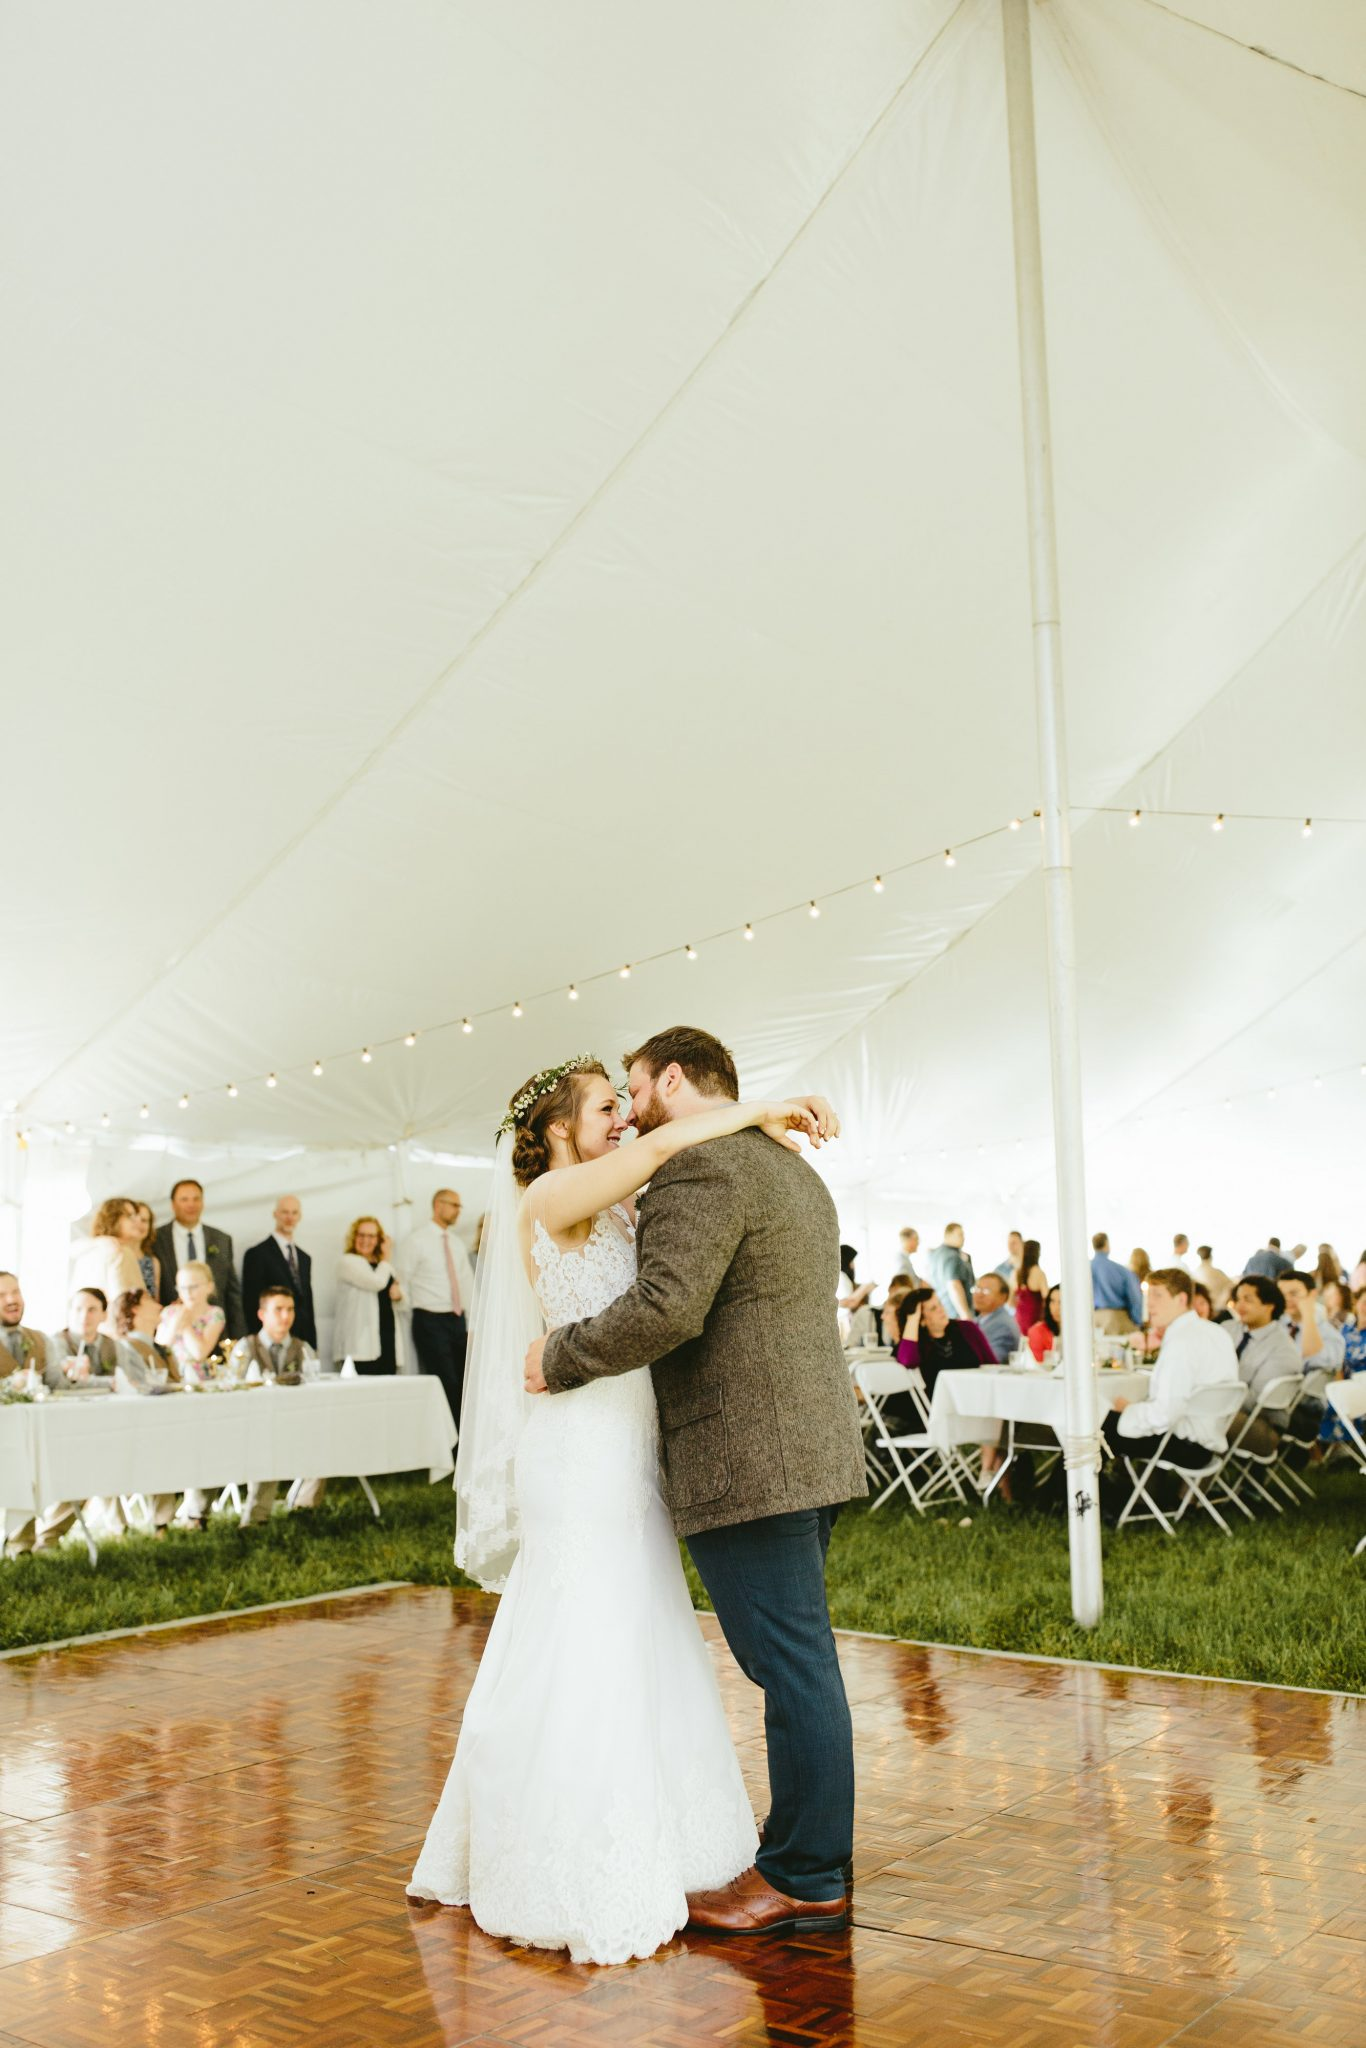 first dance inspiration, wedding reception tent inspiration, backyard wedding reception ides, outdoor wedding reception, string lit wedding reception, minimalistic reception decor, unique wedding reception decor, vintage inspired wedding decor, unique wedding plates, simple wedding decoration, outdoor wedding ceremony, barn wedding, reception tent,philadelphia documentary wedding photographer,brooklyn wedding photography, Brooklyn wedding, Philadelphia wedding photographer, Philadelphia wedding, Brooklyn new york photographer, unique wedding inspiration, fun wedding photos, romantic wedding, destination wedding photographer, wedding photography inspiration,barn wedding ideas, barn wedding, unique barn wedding inspiration